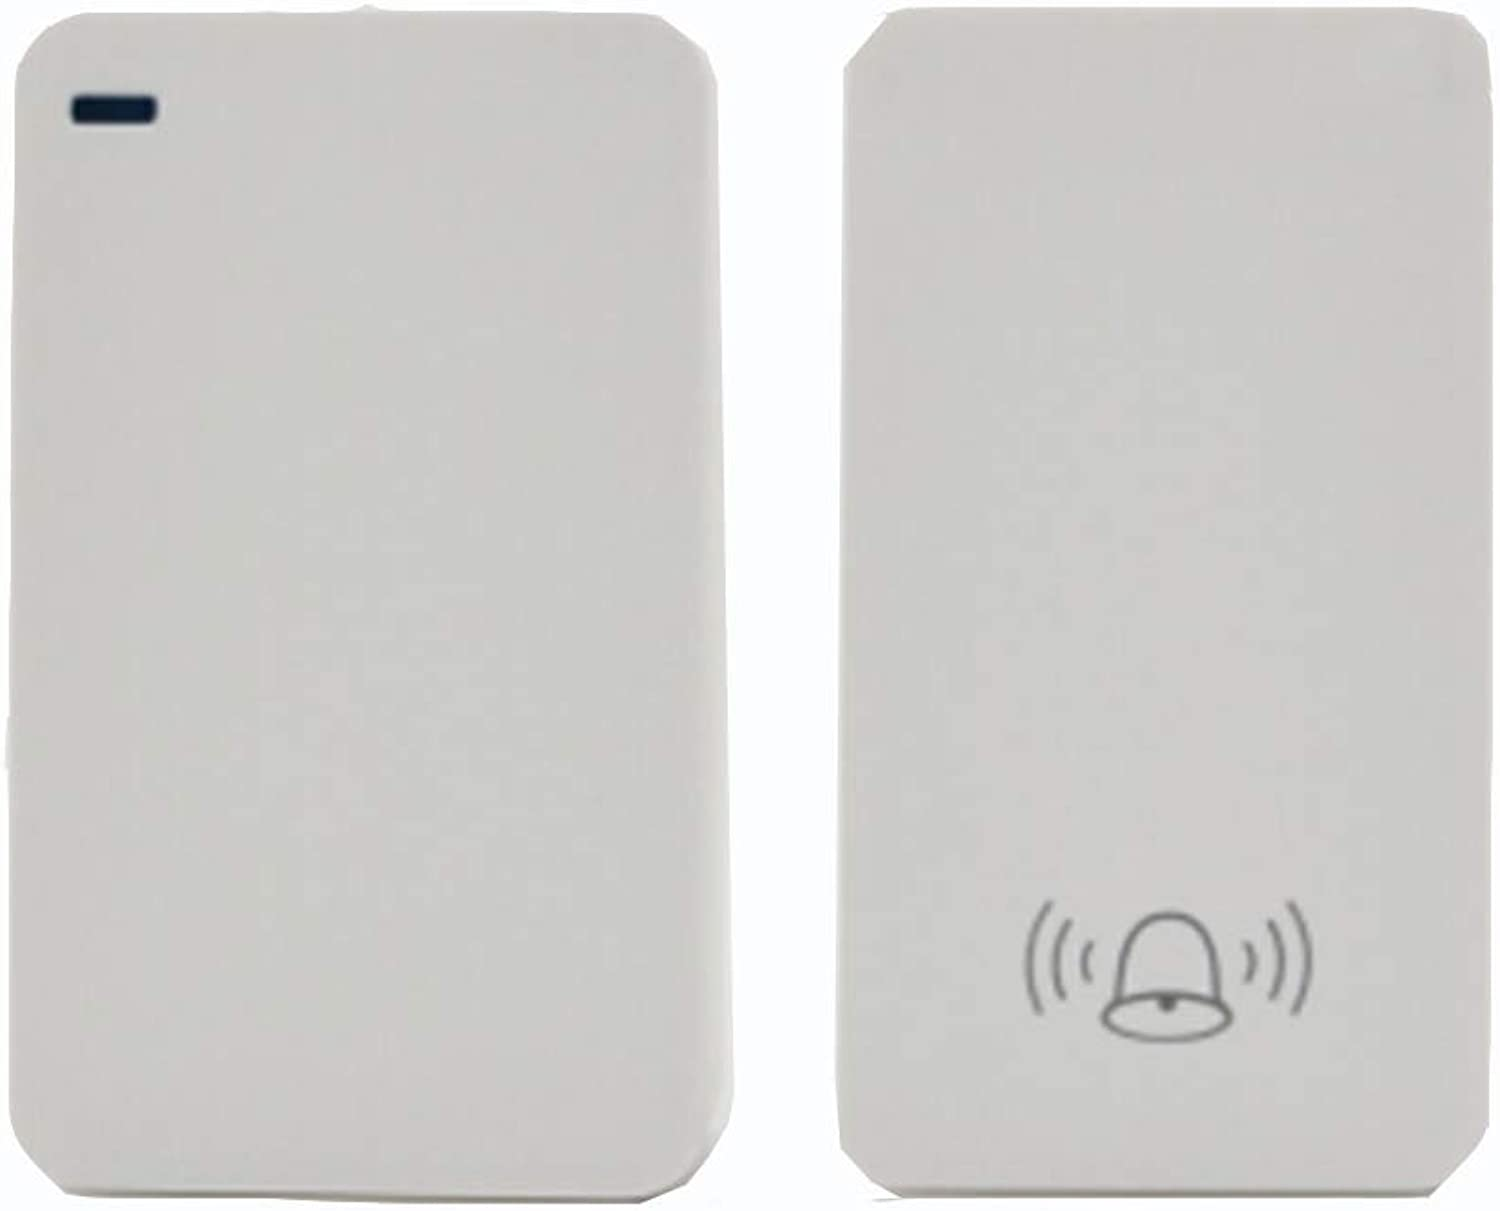 Home Wireless Doorbell, Plugin Receiver + Transmitter (SelfPowered), ABS Material, Family Company